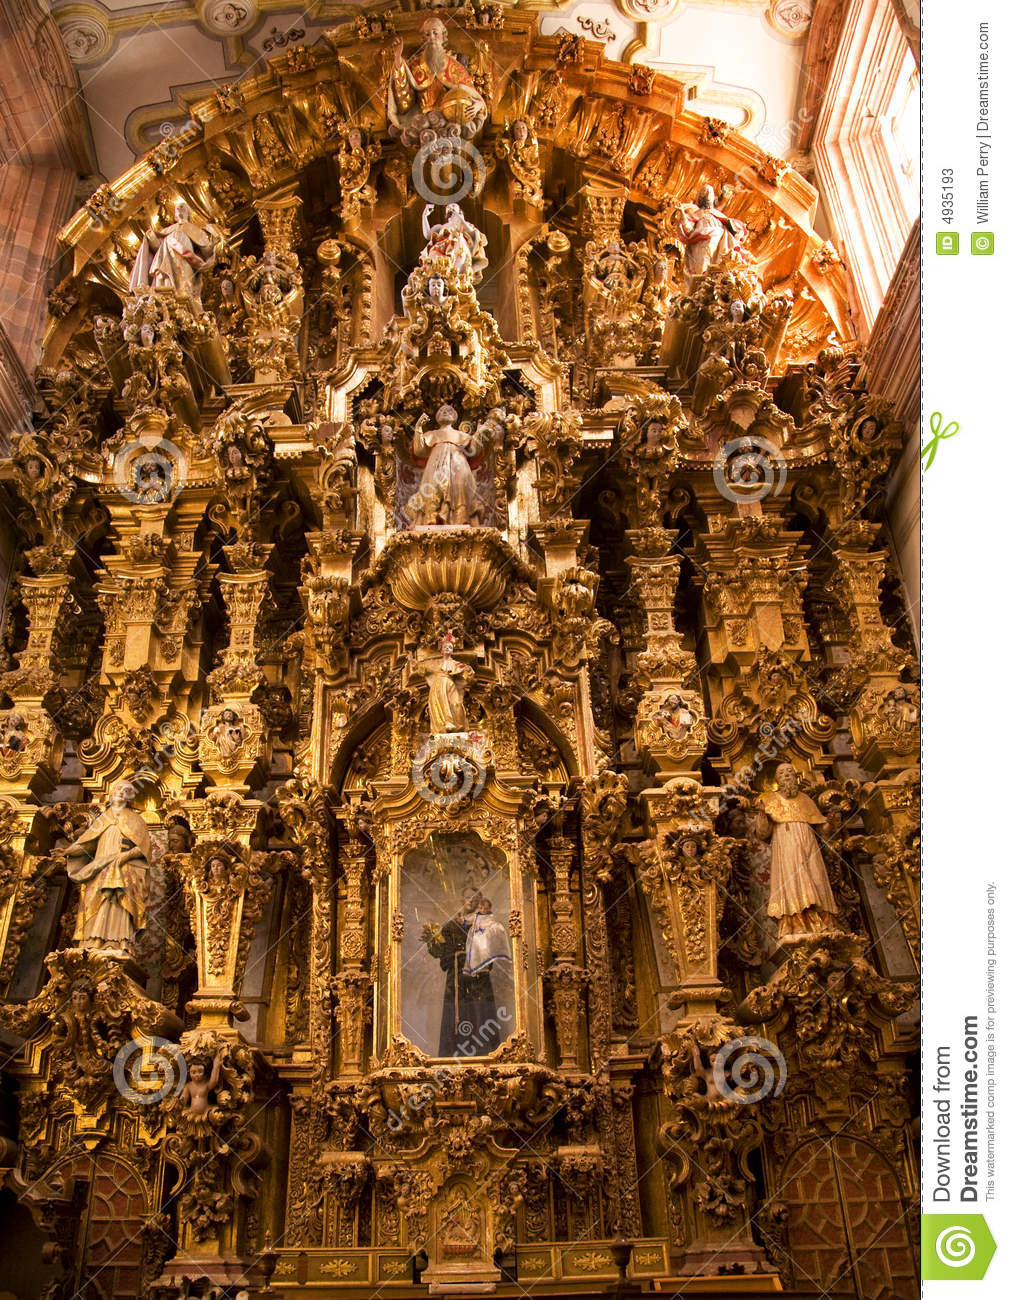 ... Mexico. This church was finished in 1788 and is named after the nearby